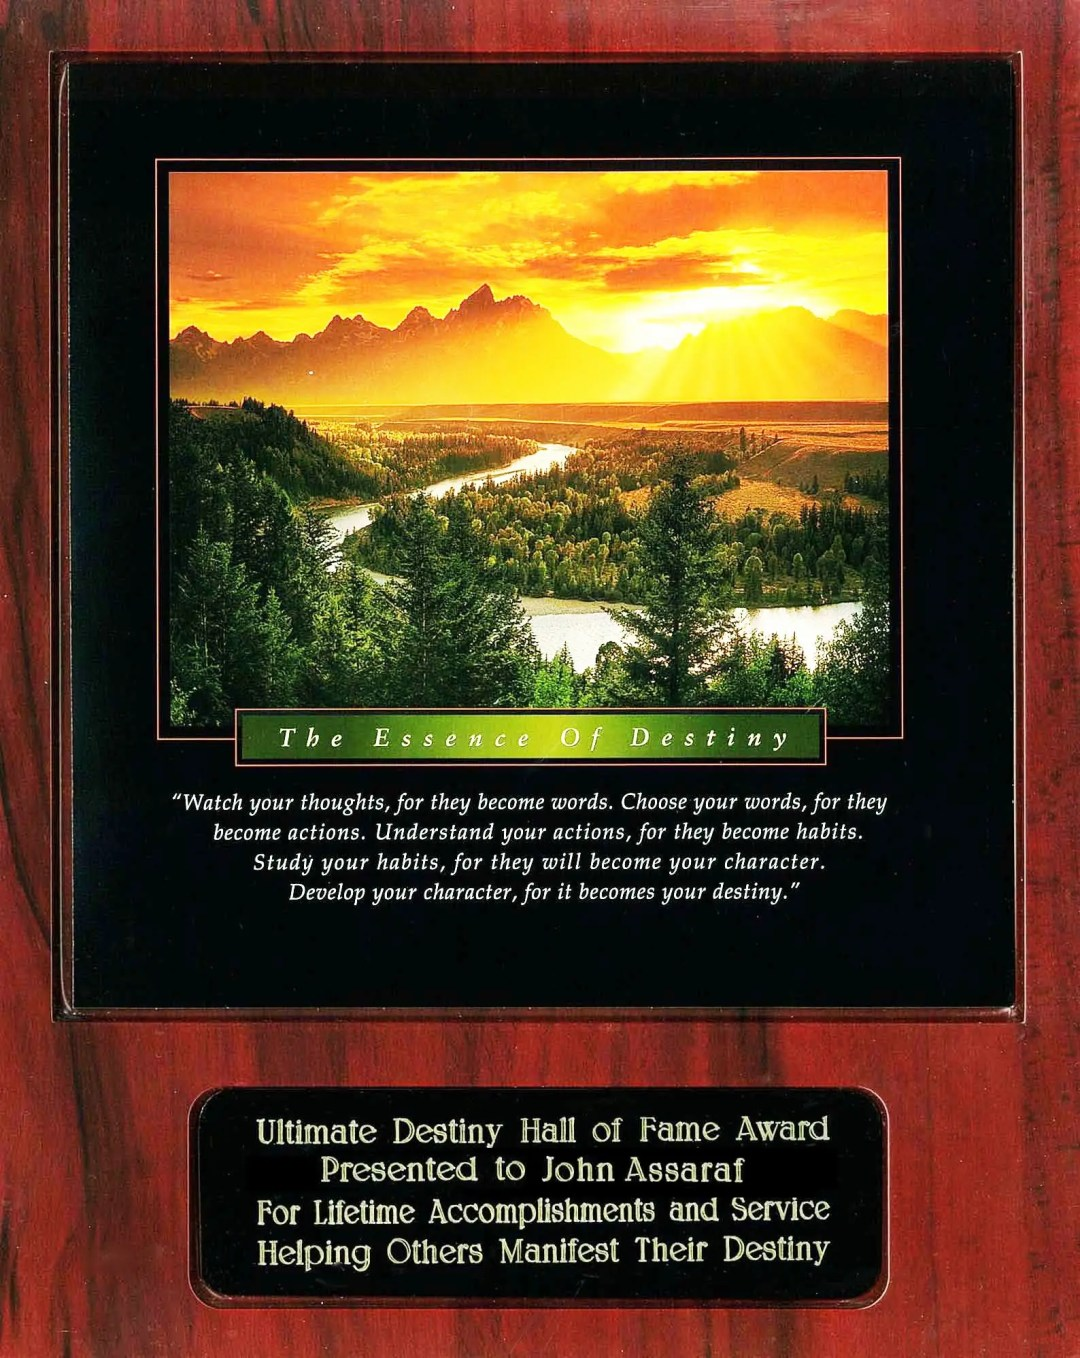 Ultimate Destiny Hall of Fame Award Presented to John Assaraf